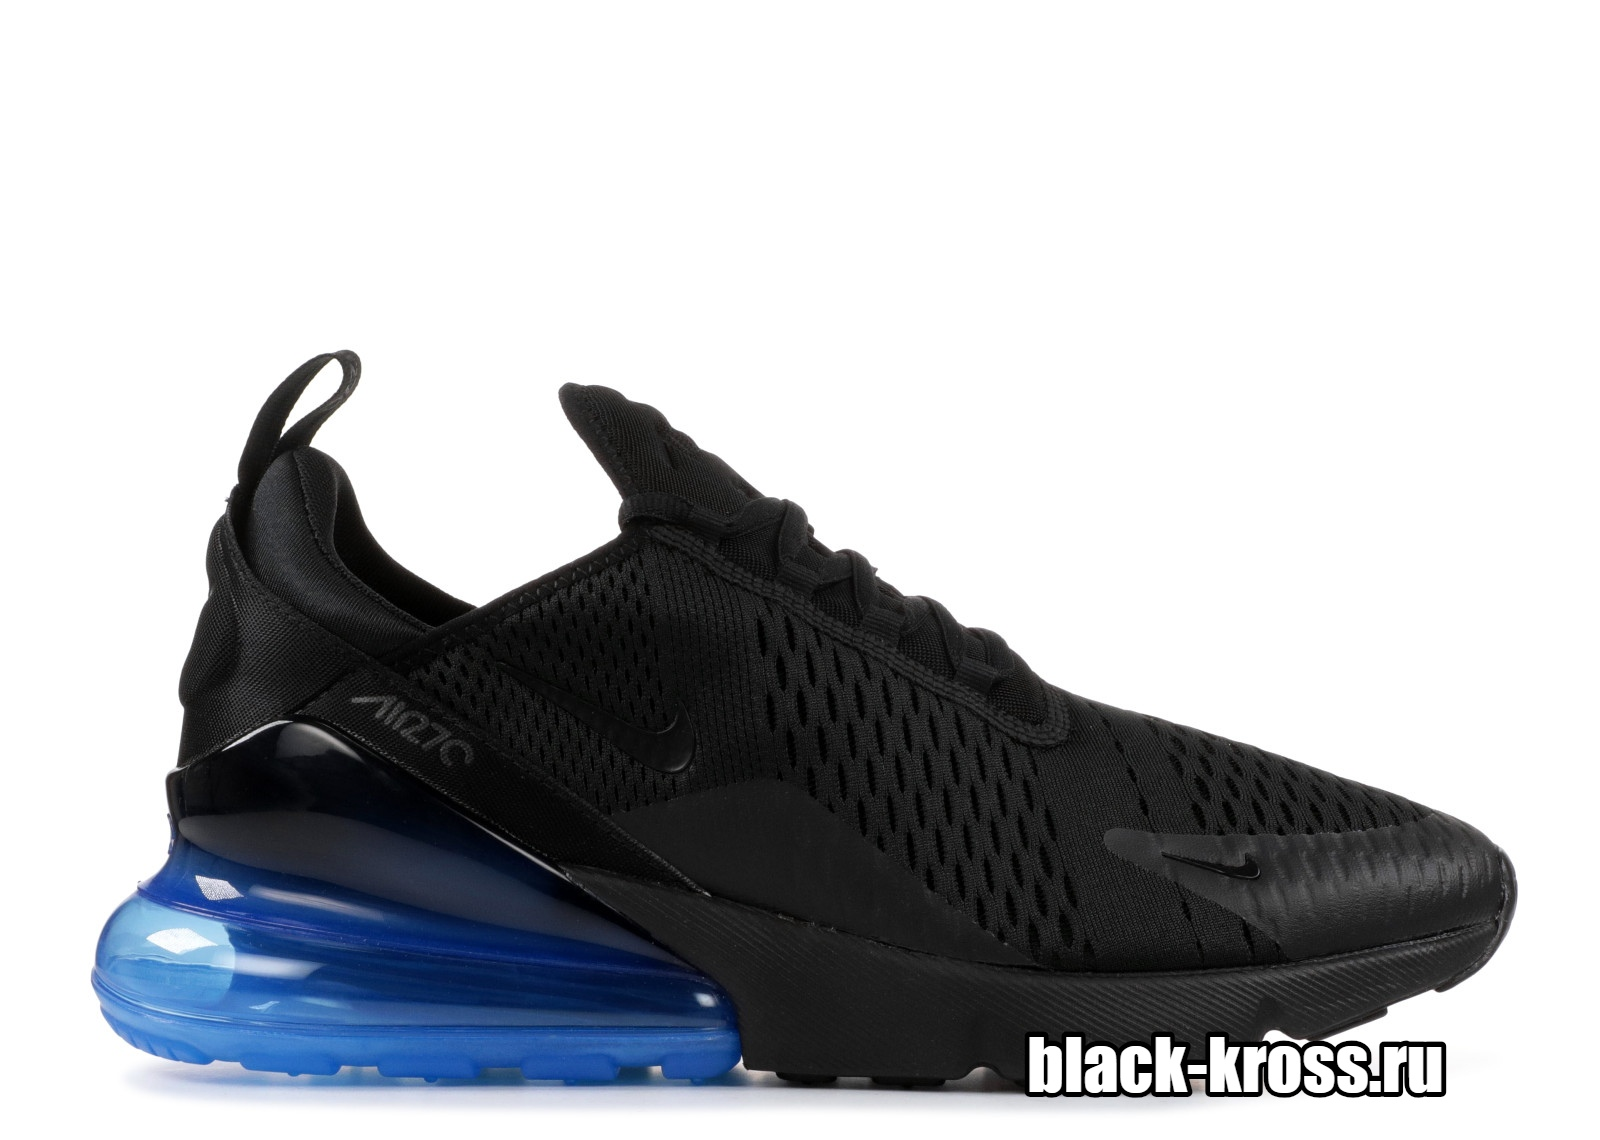 Nike Air Max 270 Black & Blue (41-45)